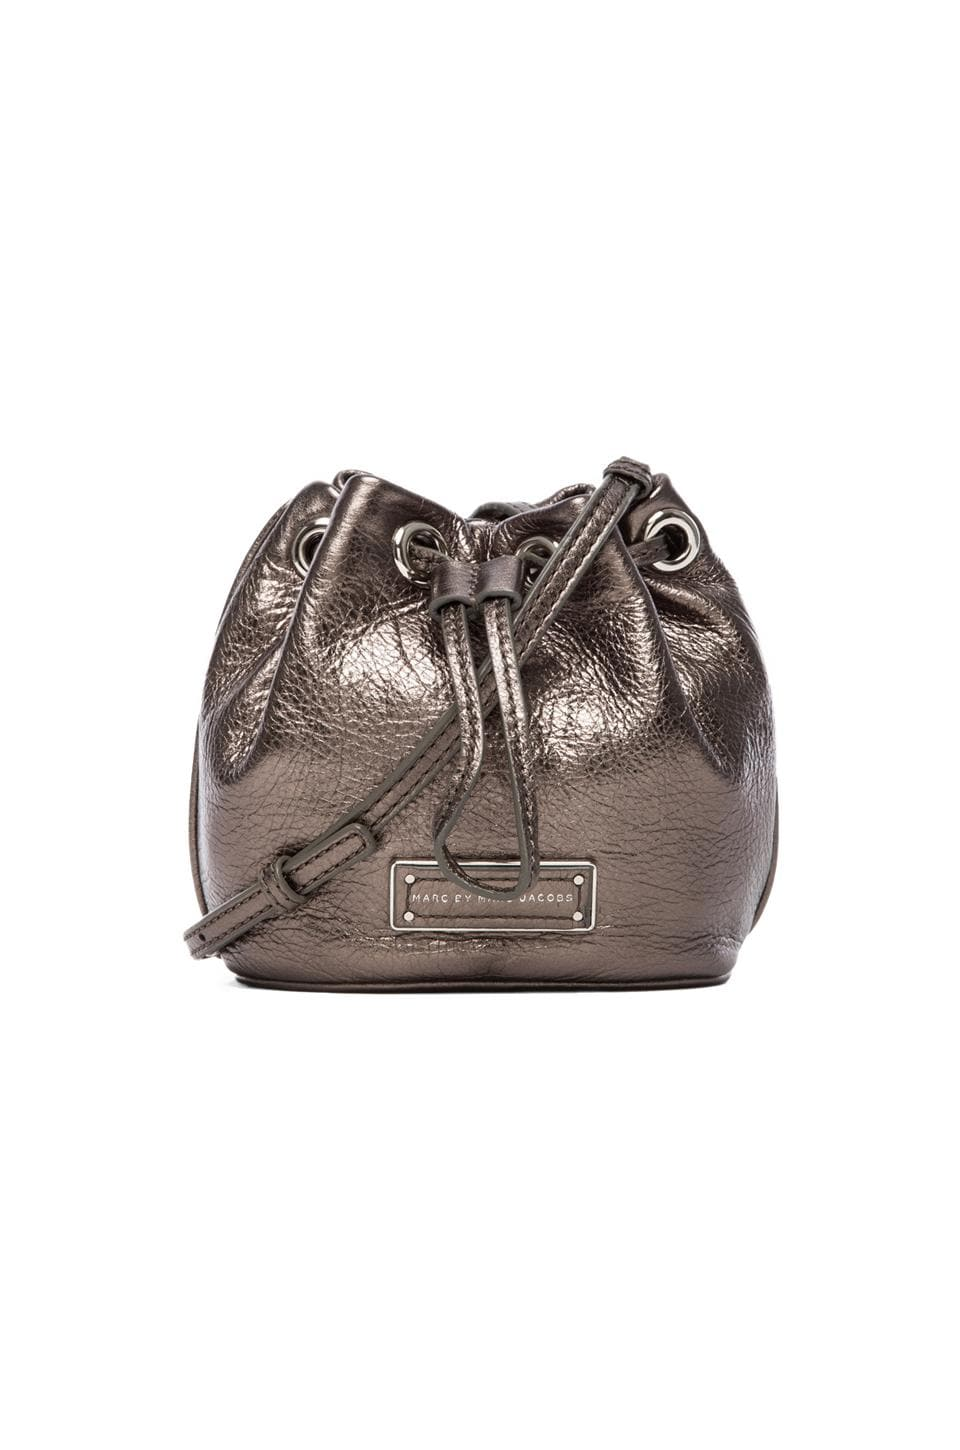 Marc by Marc Jacobs Too Hot To Handle Mini Drawstring Bag in Gunmetal